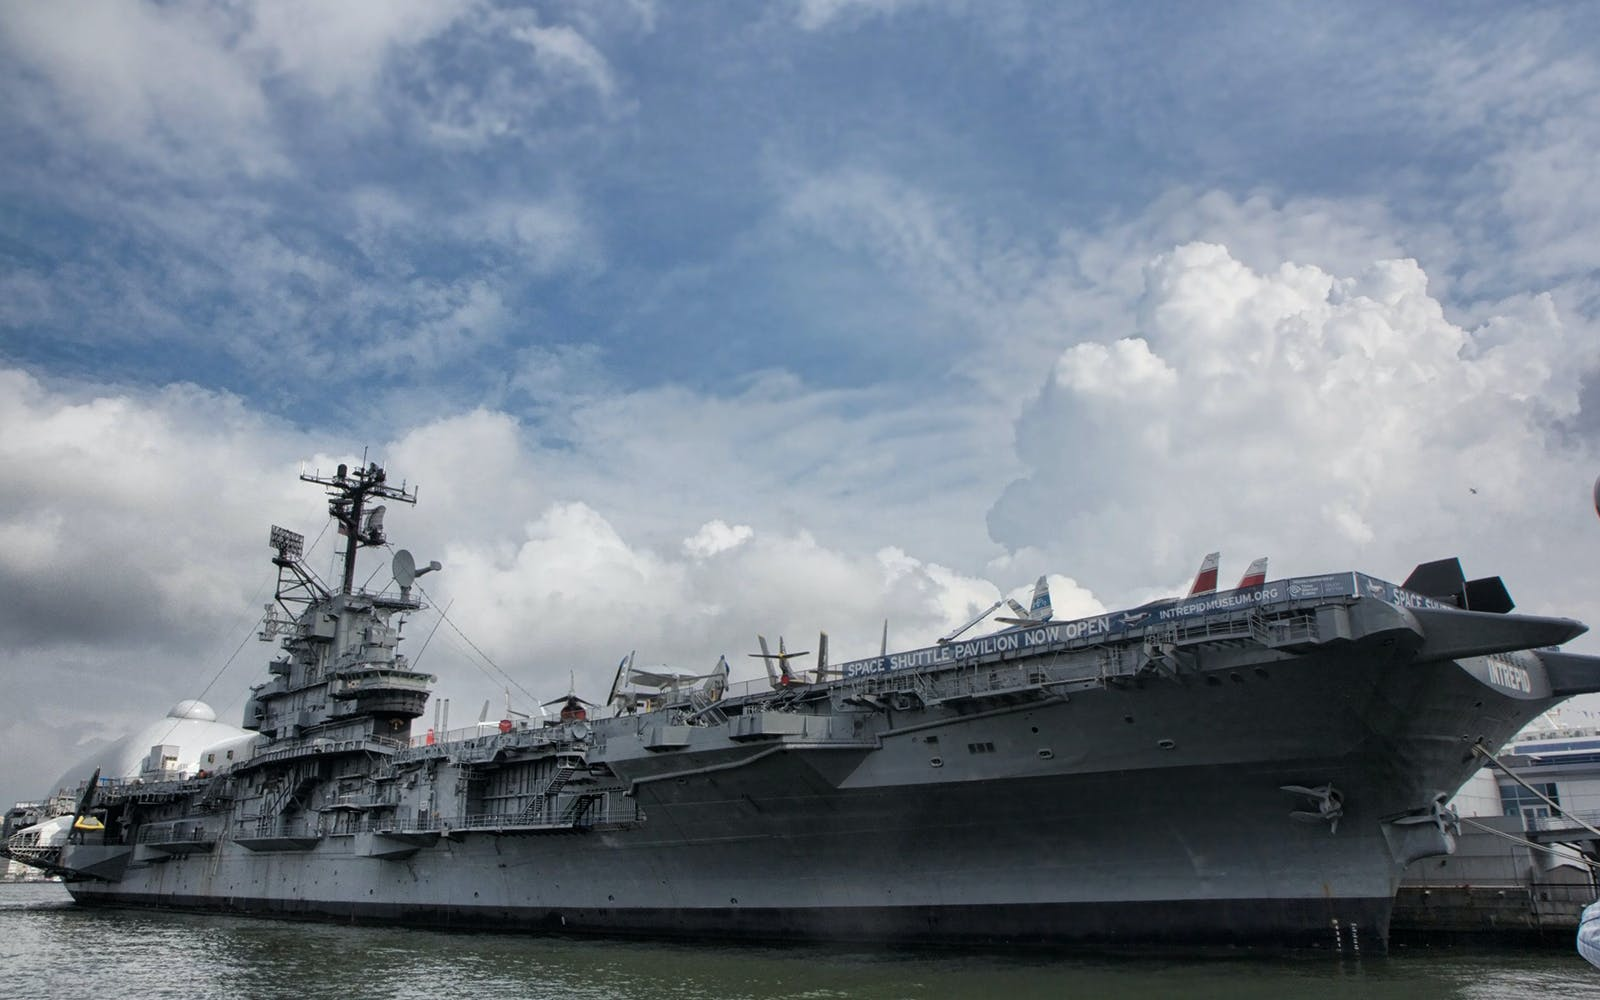 Intrepid Sea, Air & Space Museum Tickets